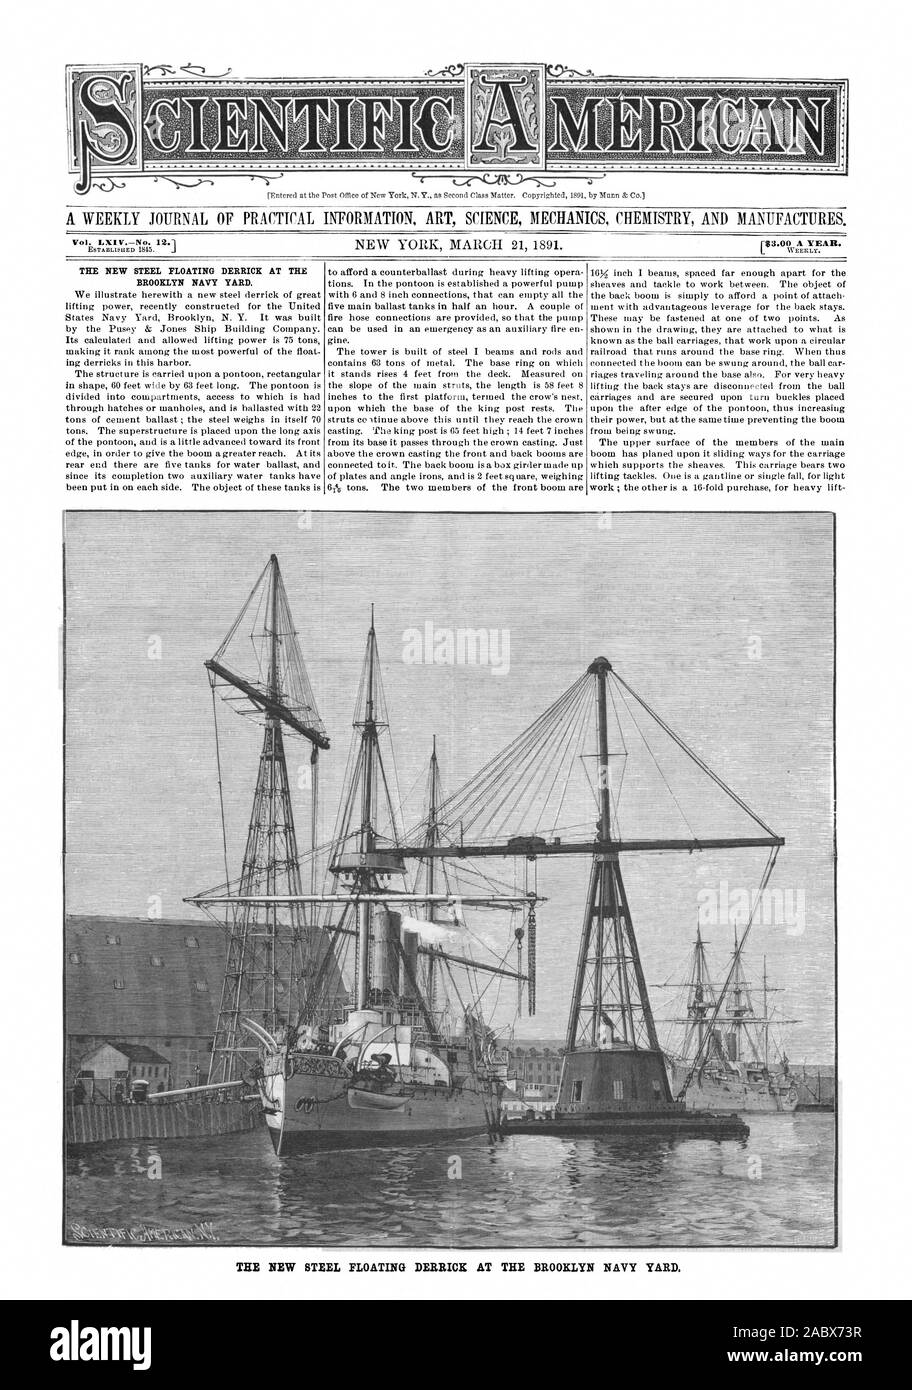 Vol. LXI VNo. 12. THE NEW STEEL FLOATING DERRICK AT THE BROOKLYN NAVY YARD., scientific american, 1891-03-21 Stock Photo